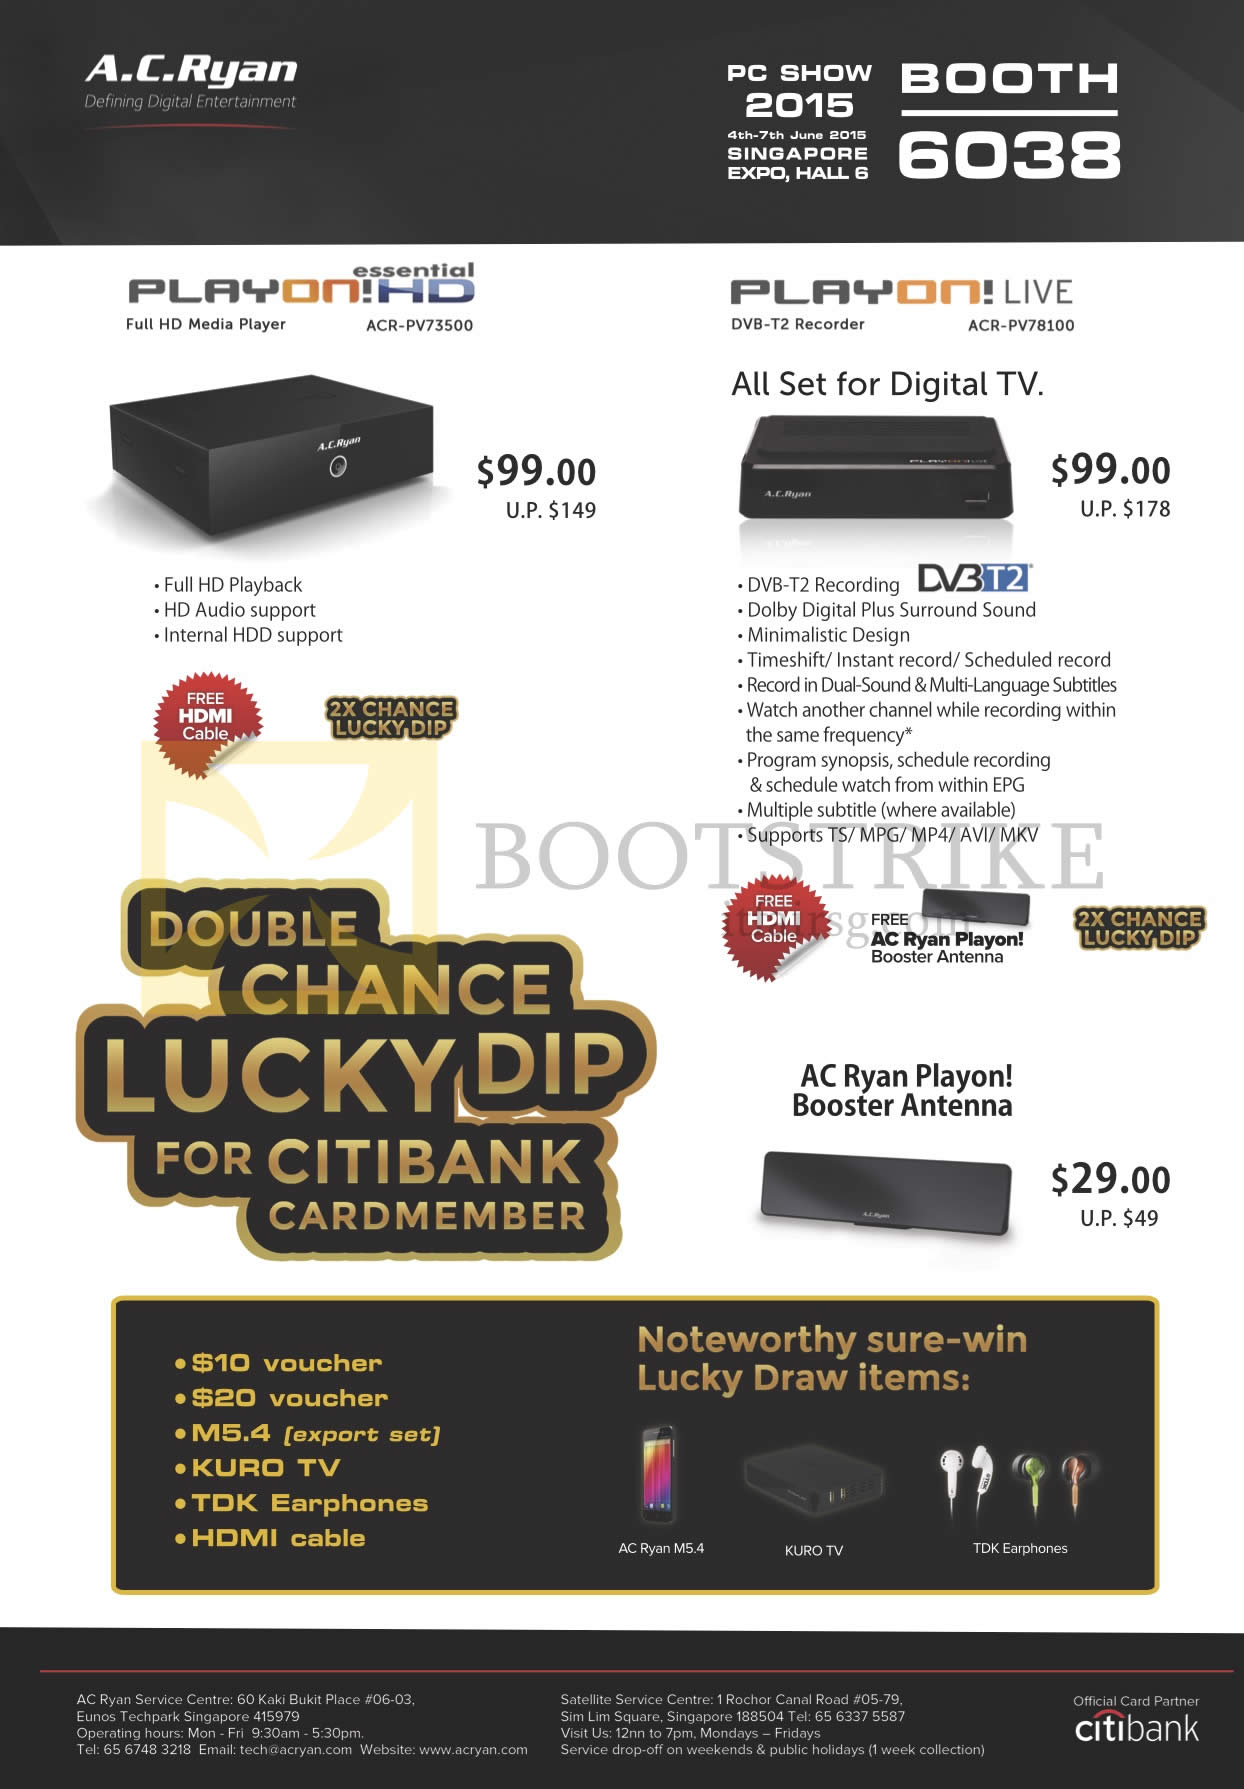 PC SHOW 2015 price list image brochure of AC Ryan Media Players Play On HD Essential, PlayOn Live DVB TV Recorder, Booster Antenna